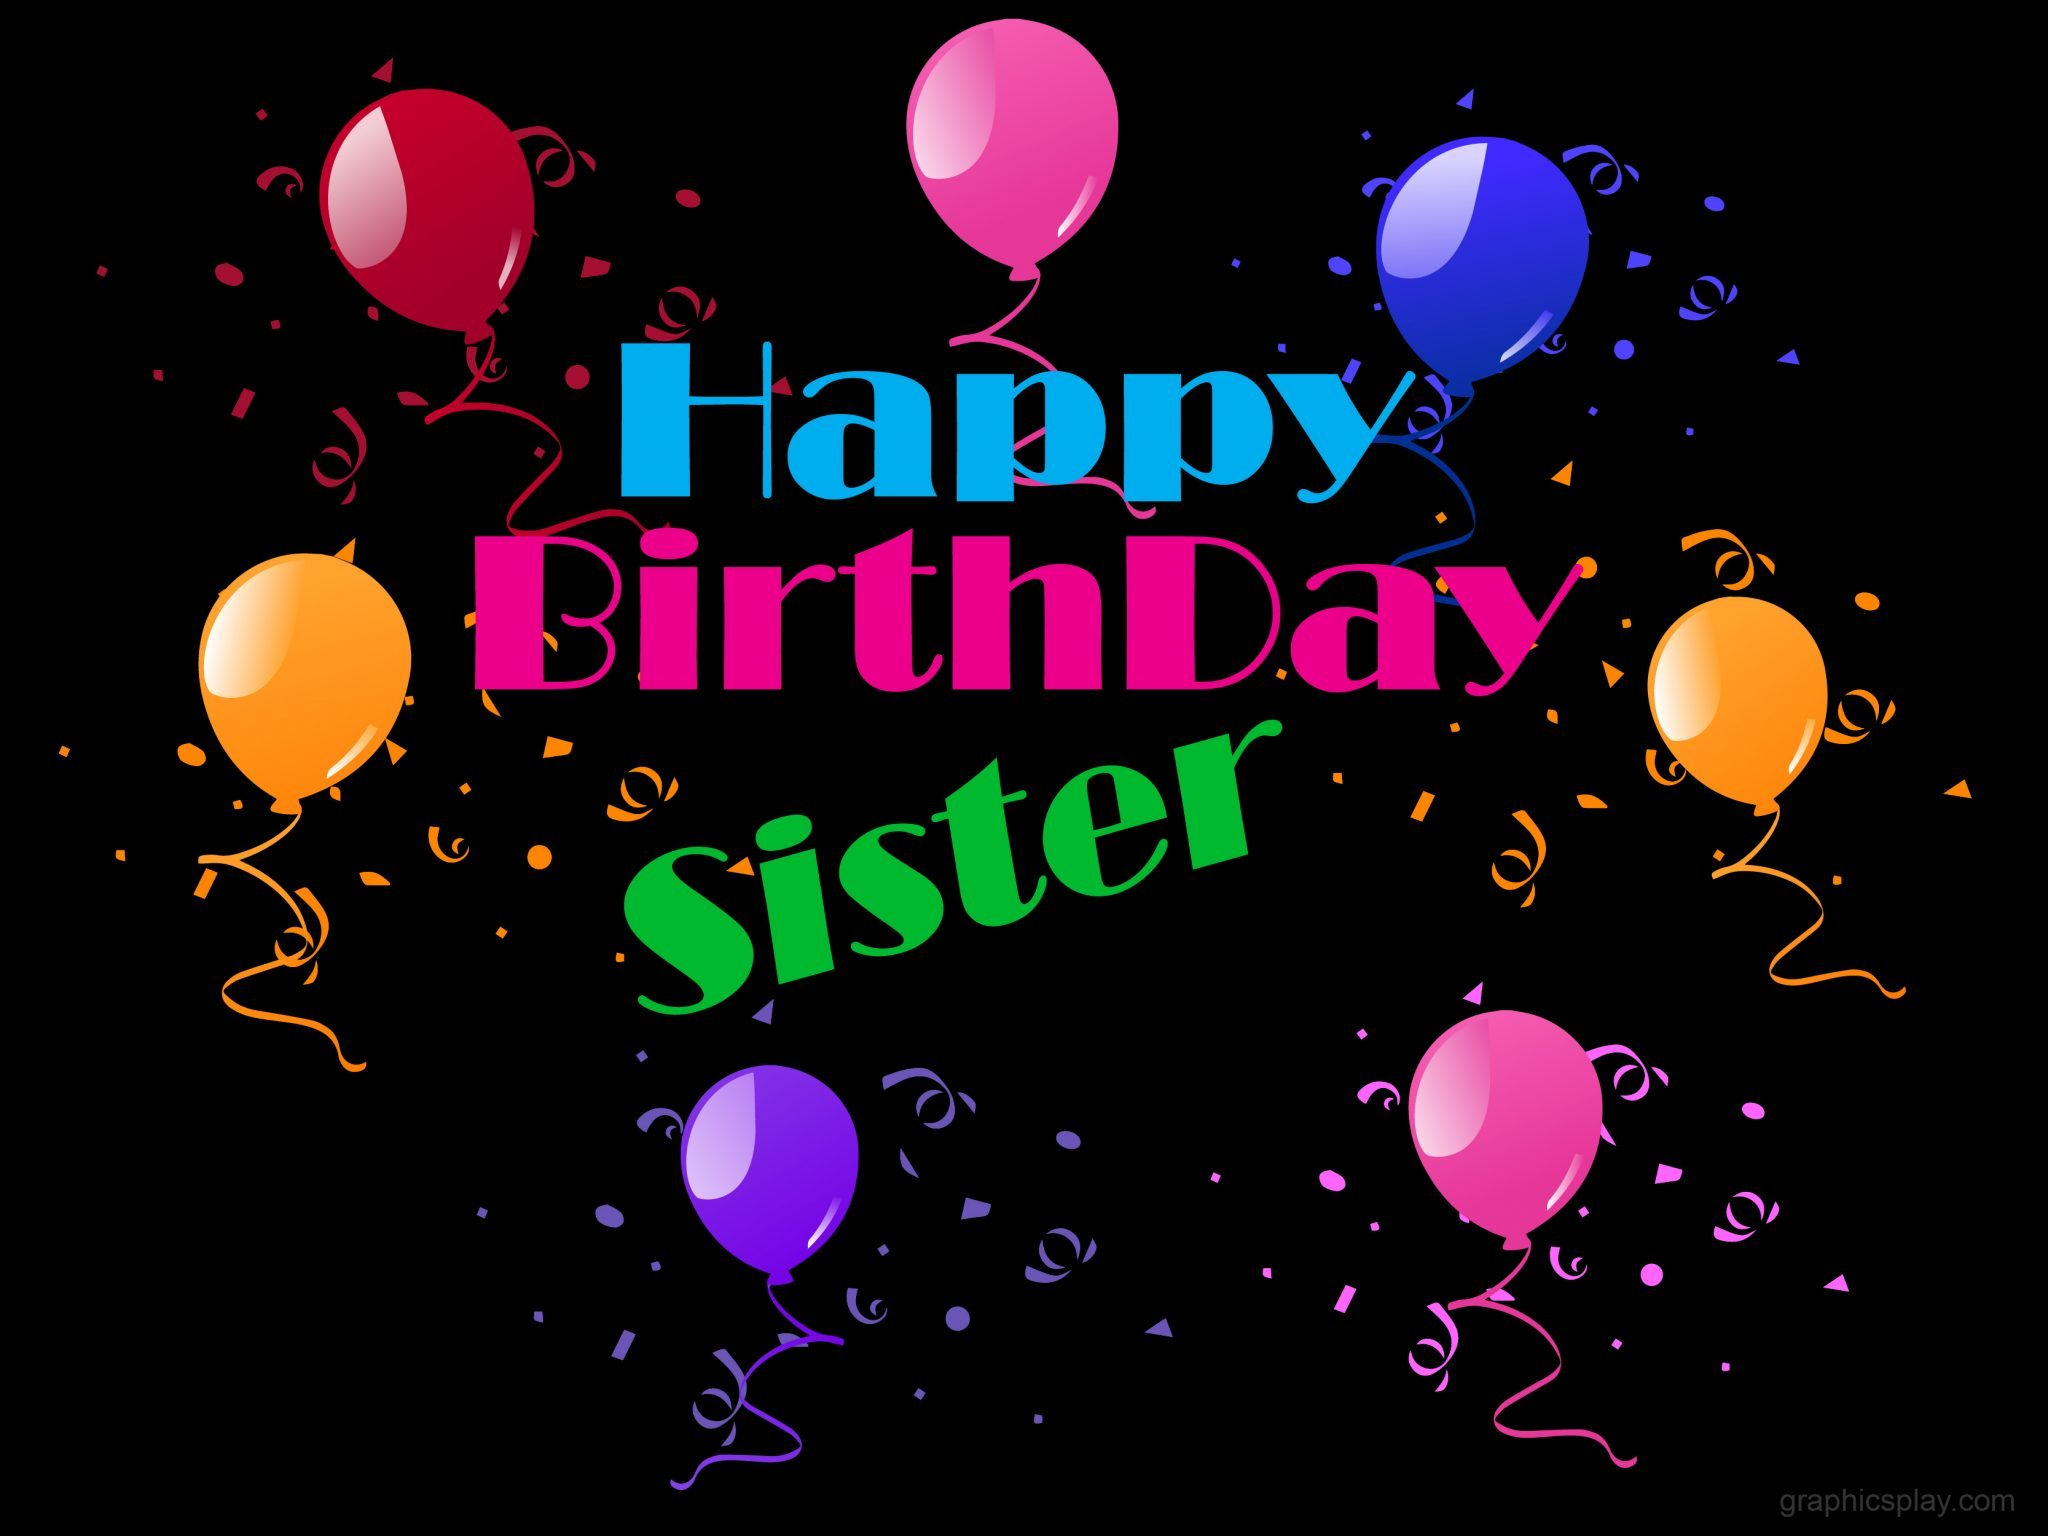 Happy Birthday Sister Beautiful Greeting Graphicsplay